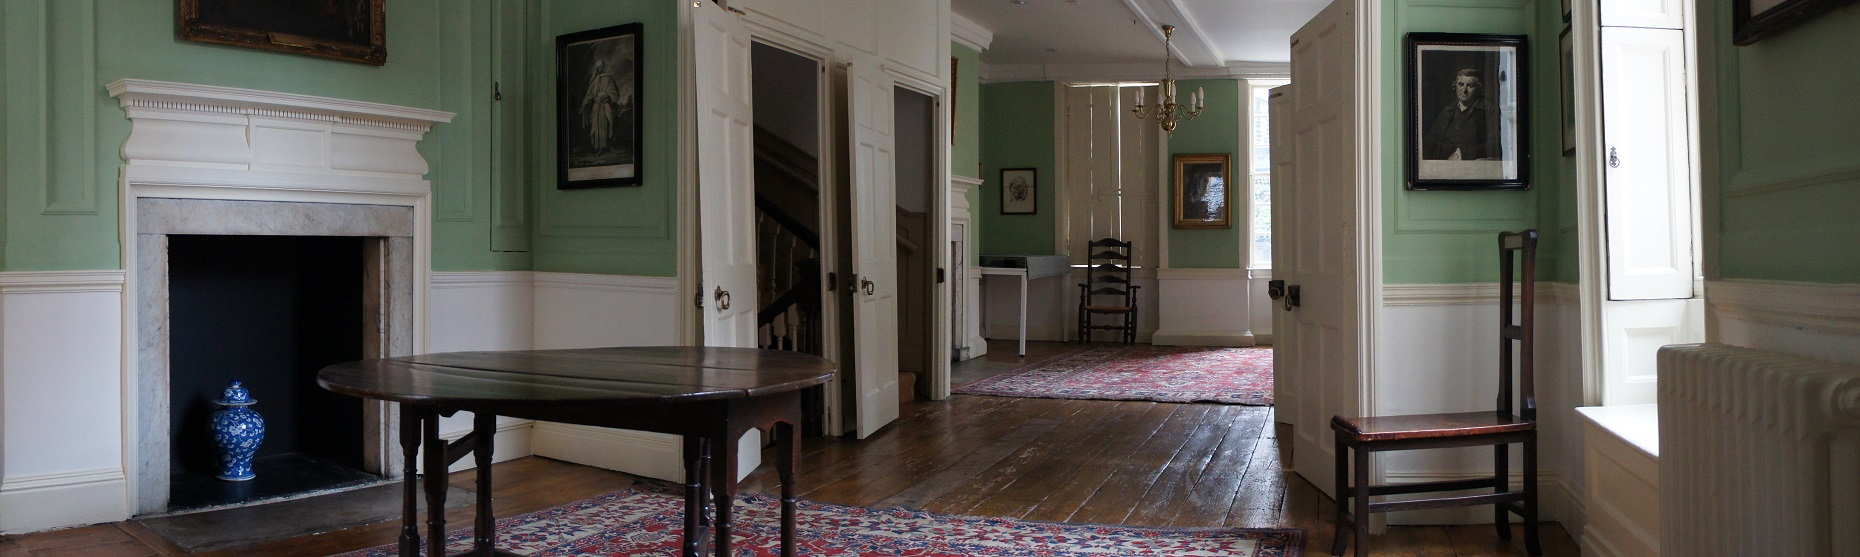 Dr Johnson's House home page